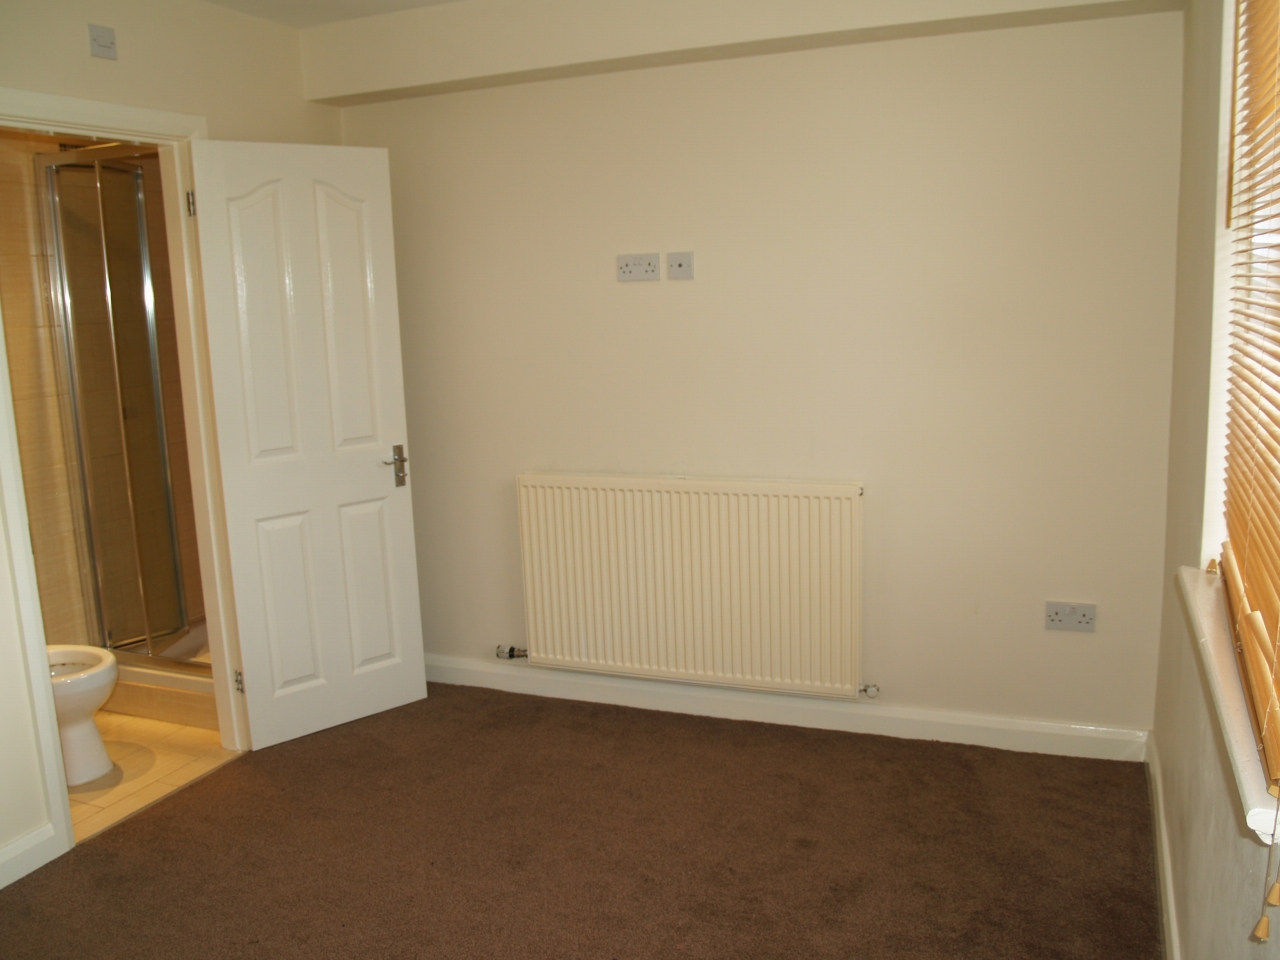 3 bedroom mid terraced house For Sale in Birmingham - Photograph 7.